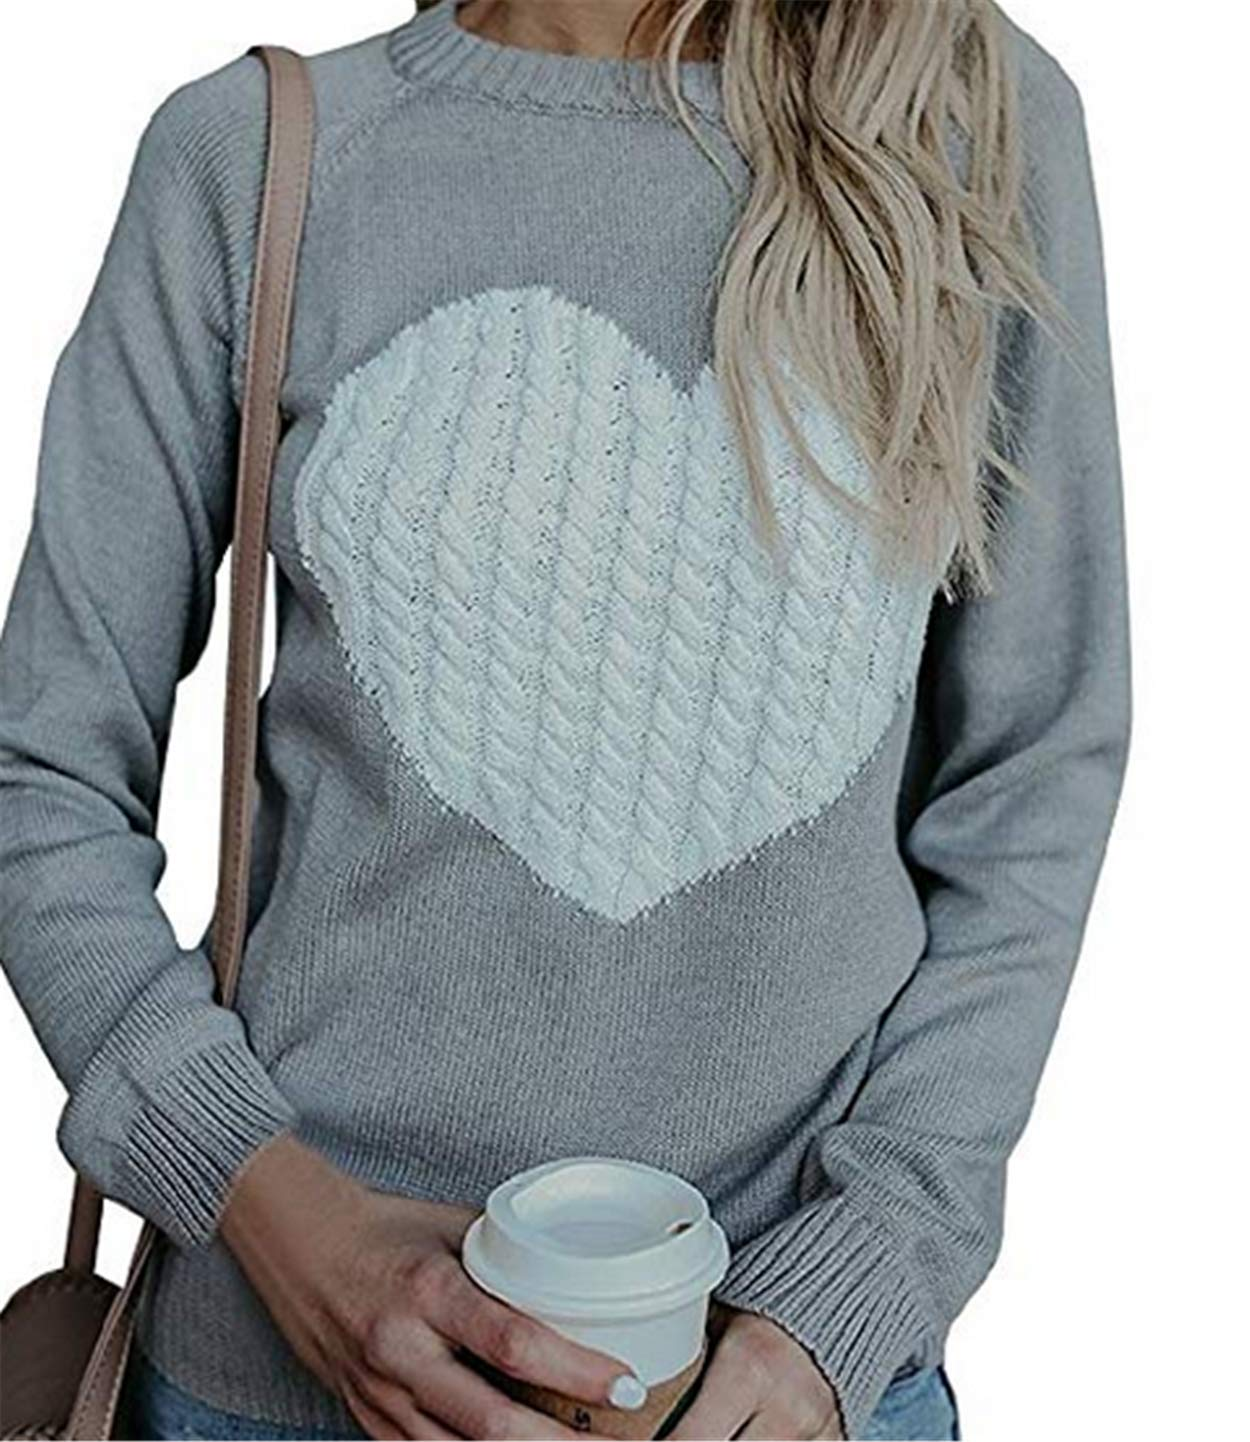 Bohai Womens Casual Cable Knitted Crewneck Heart Love Oversized Pullover Sweater